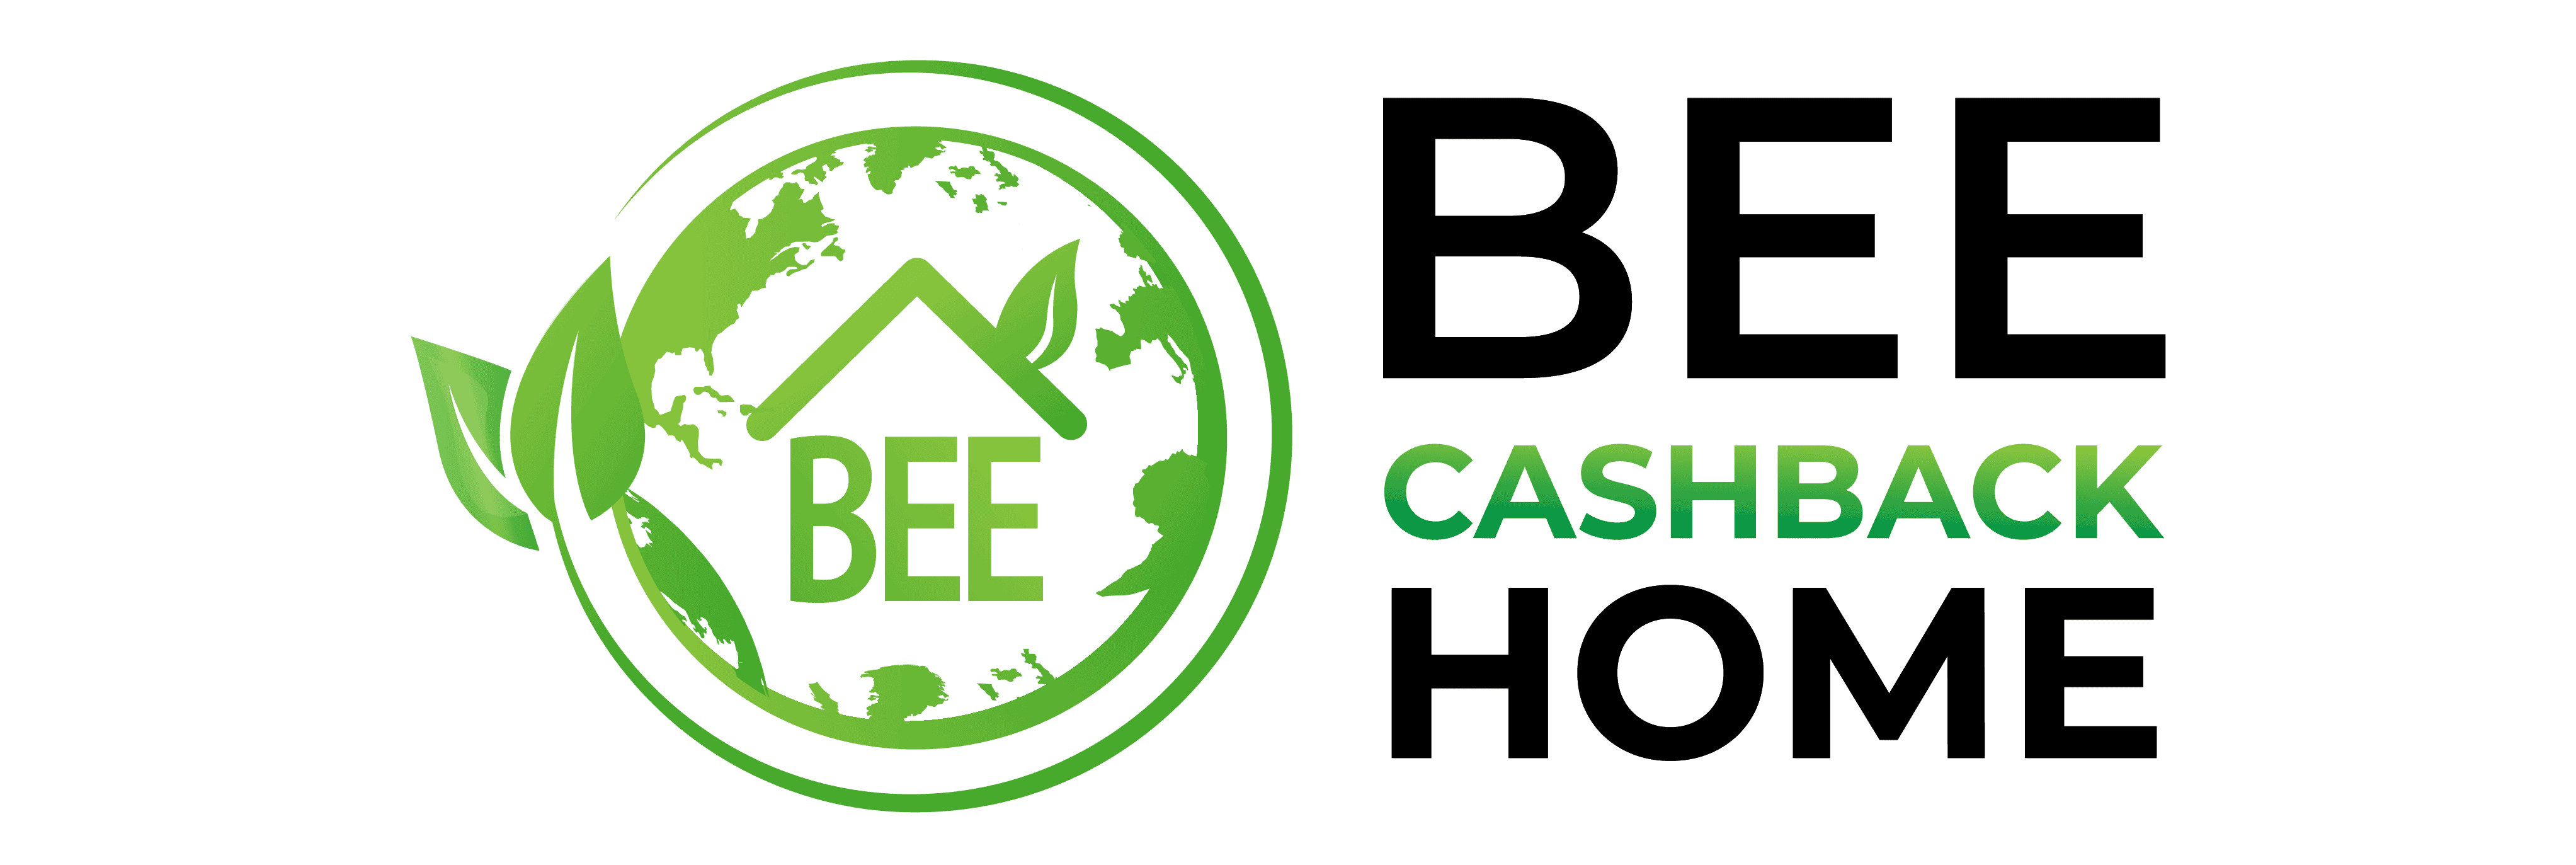 Bee Cashback Home